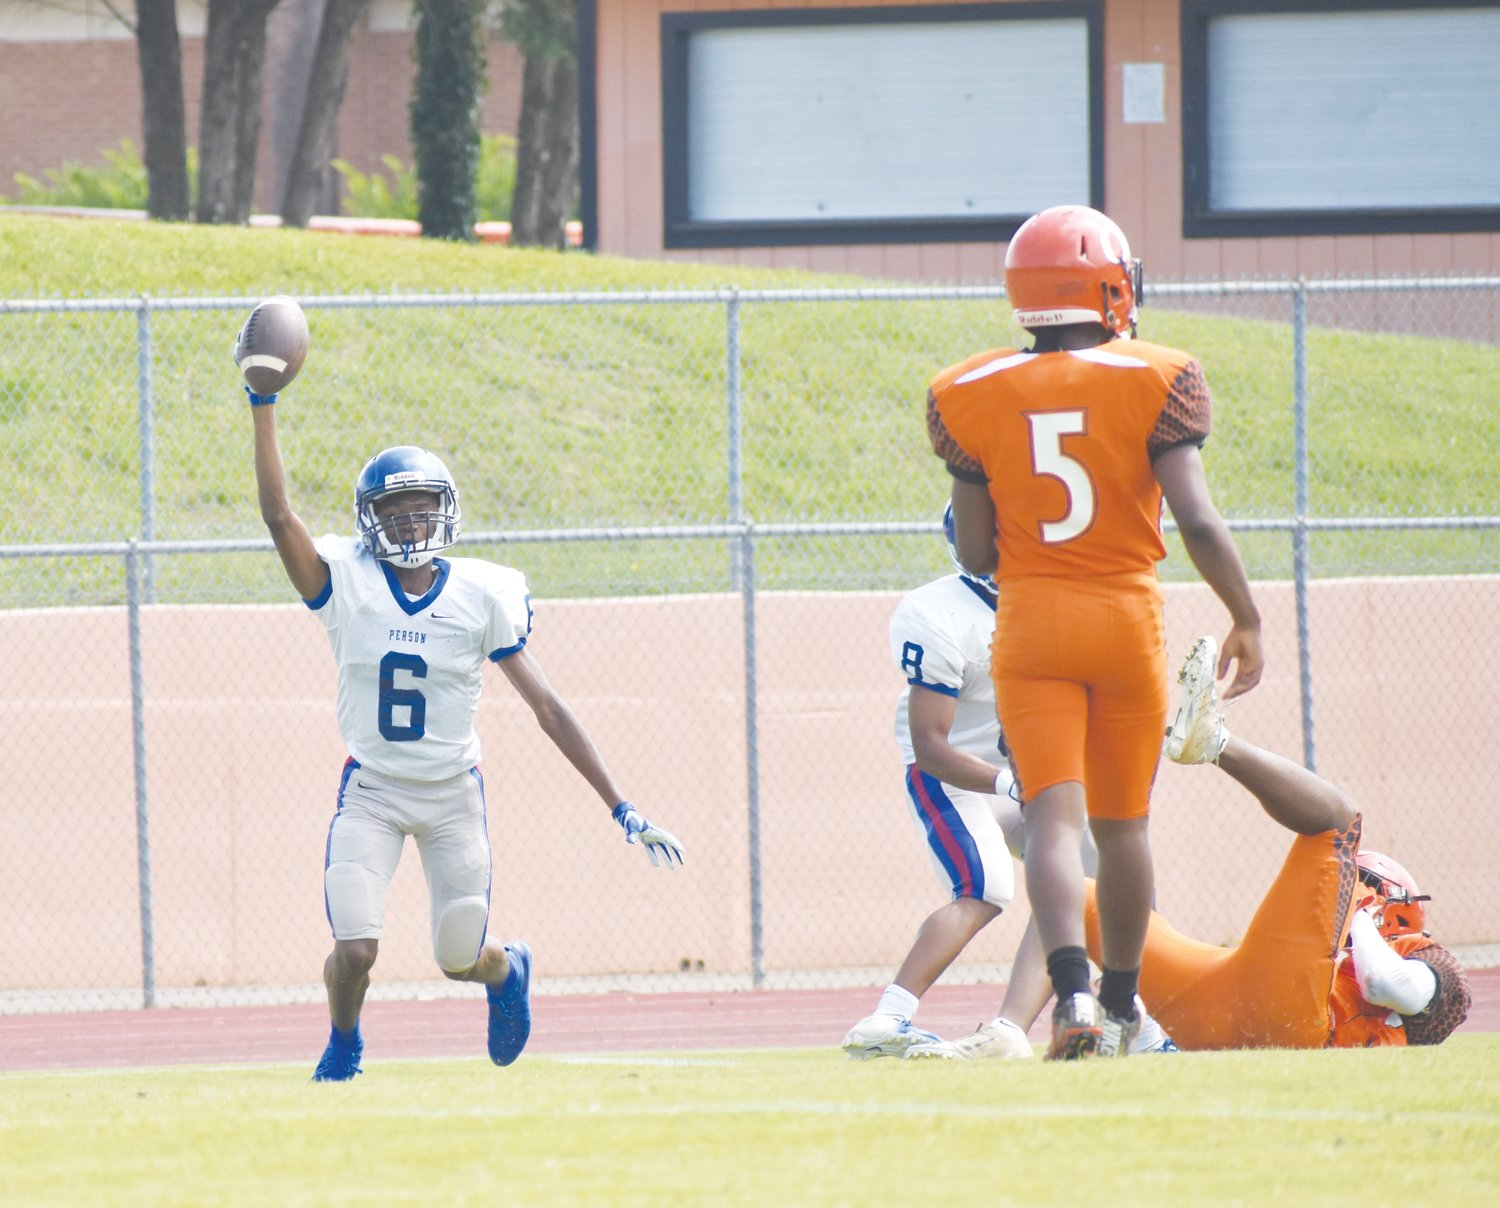 Kelly Snow | The Courier-Times.Person High School football player Jailin Smith shows the ball after making an interception during Saturday's scrimmage against Orange. Smith had two interceptions in the scrimmage..